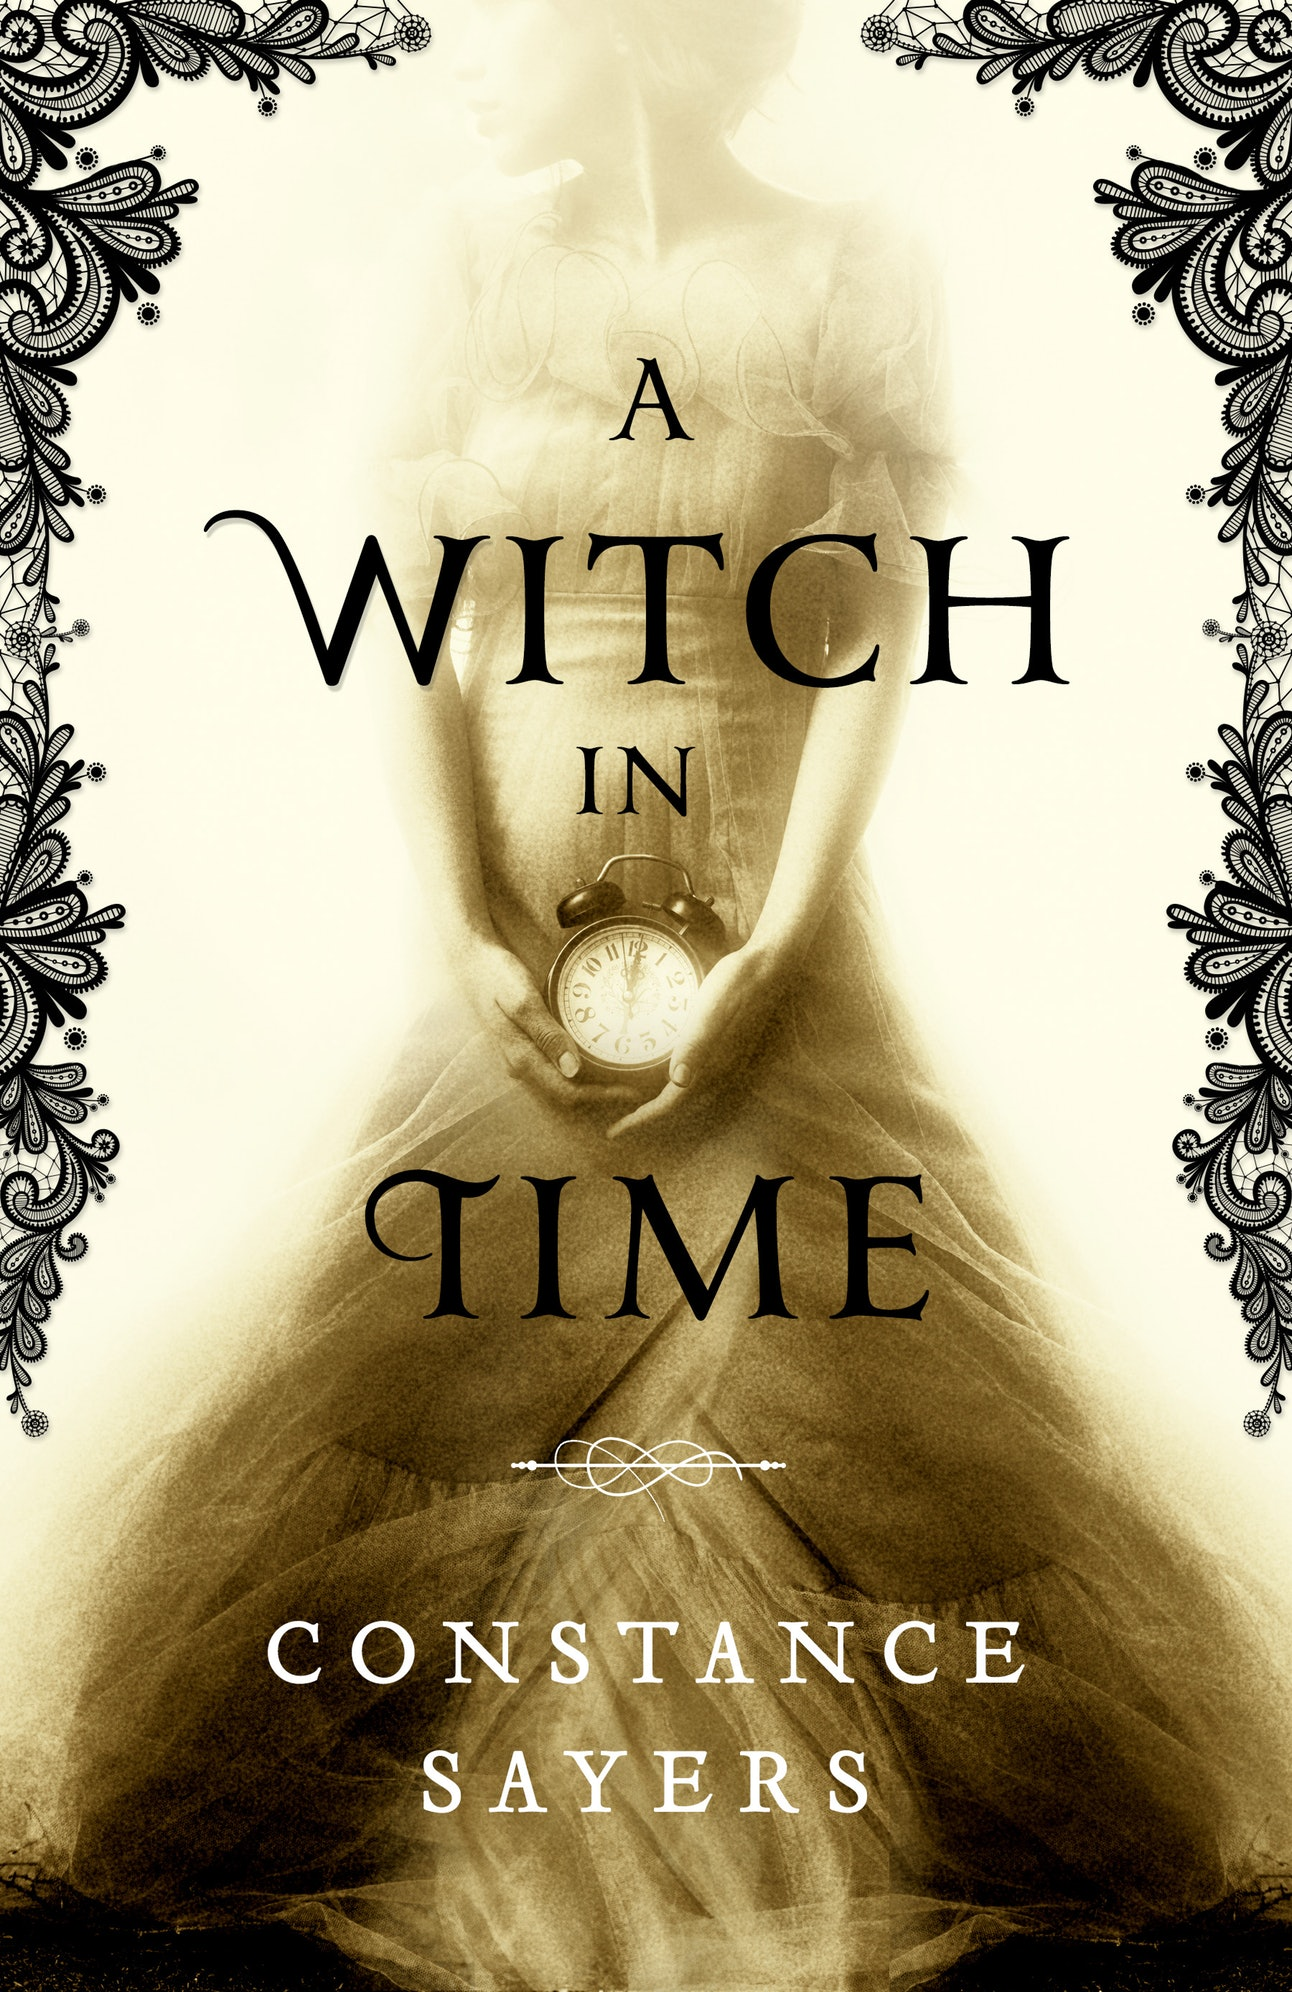 A Witch in Time - Constance Sayers